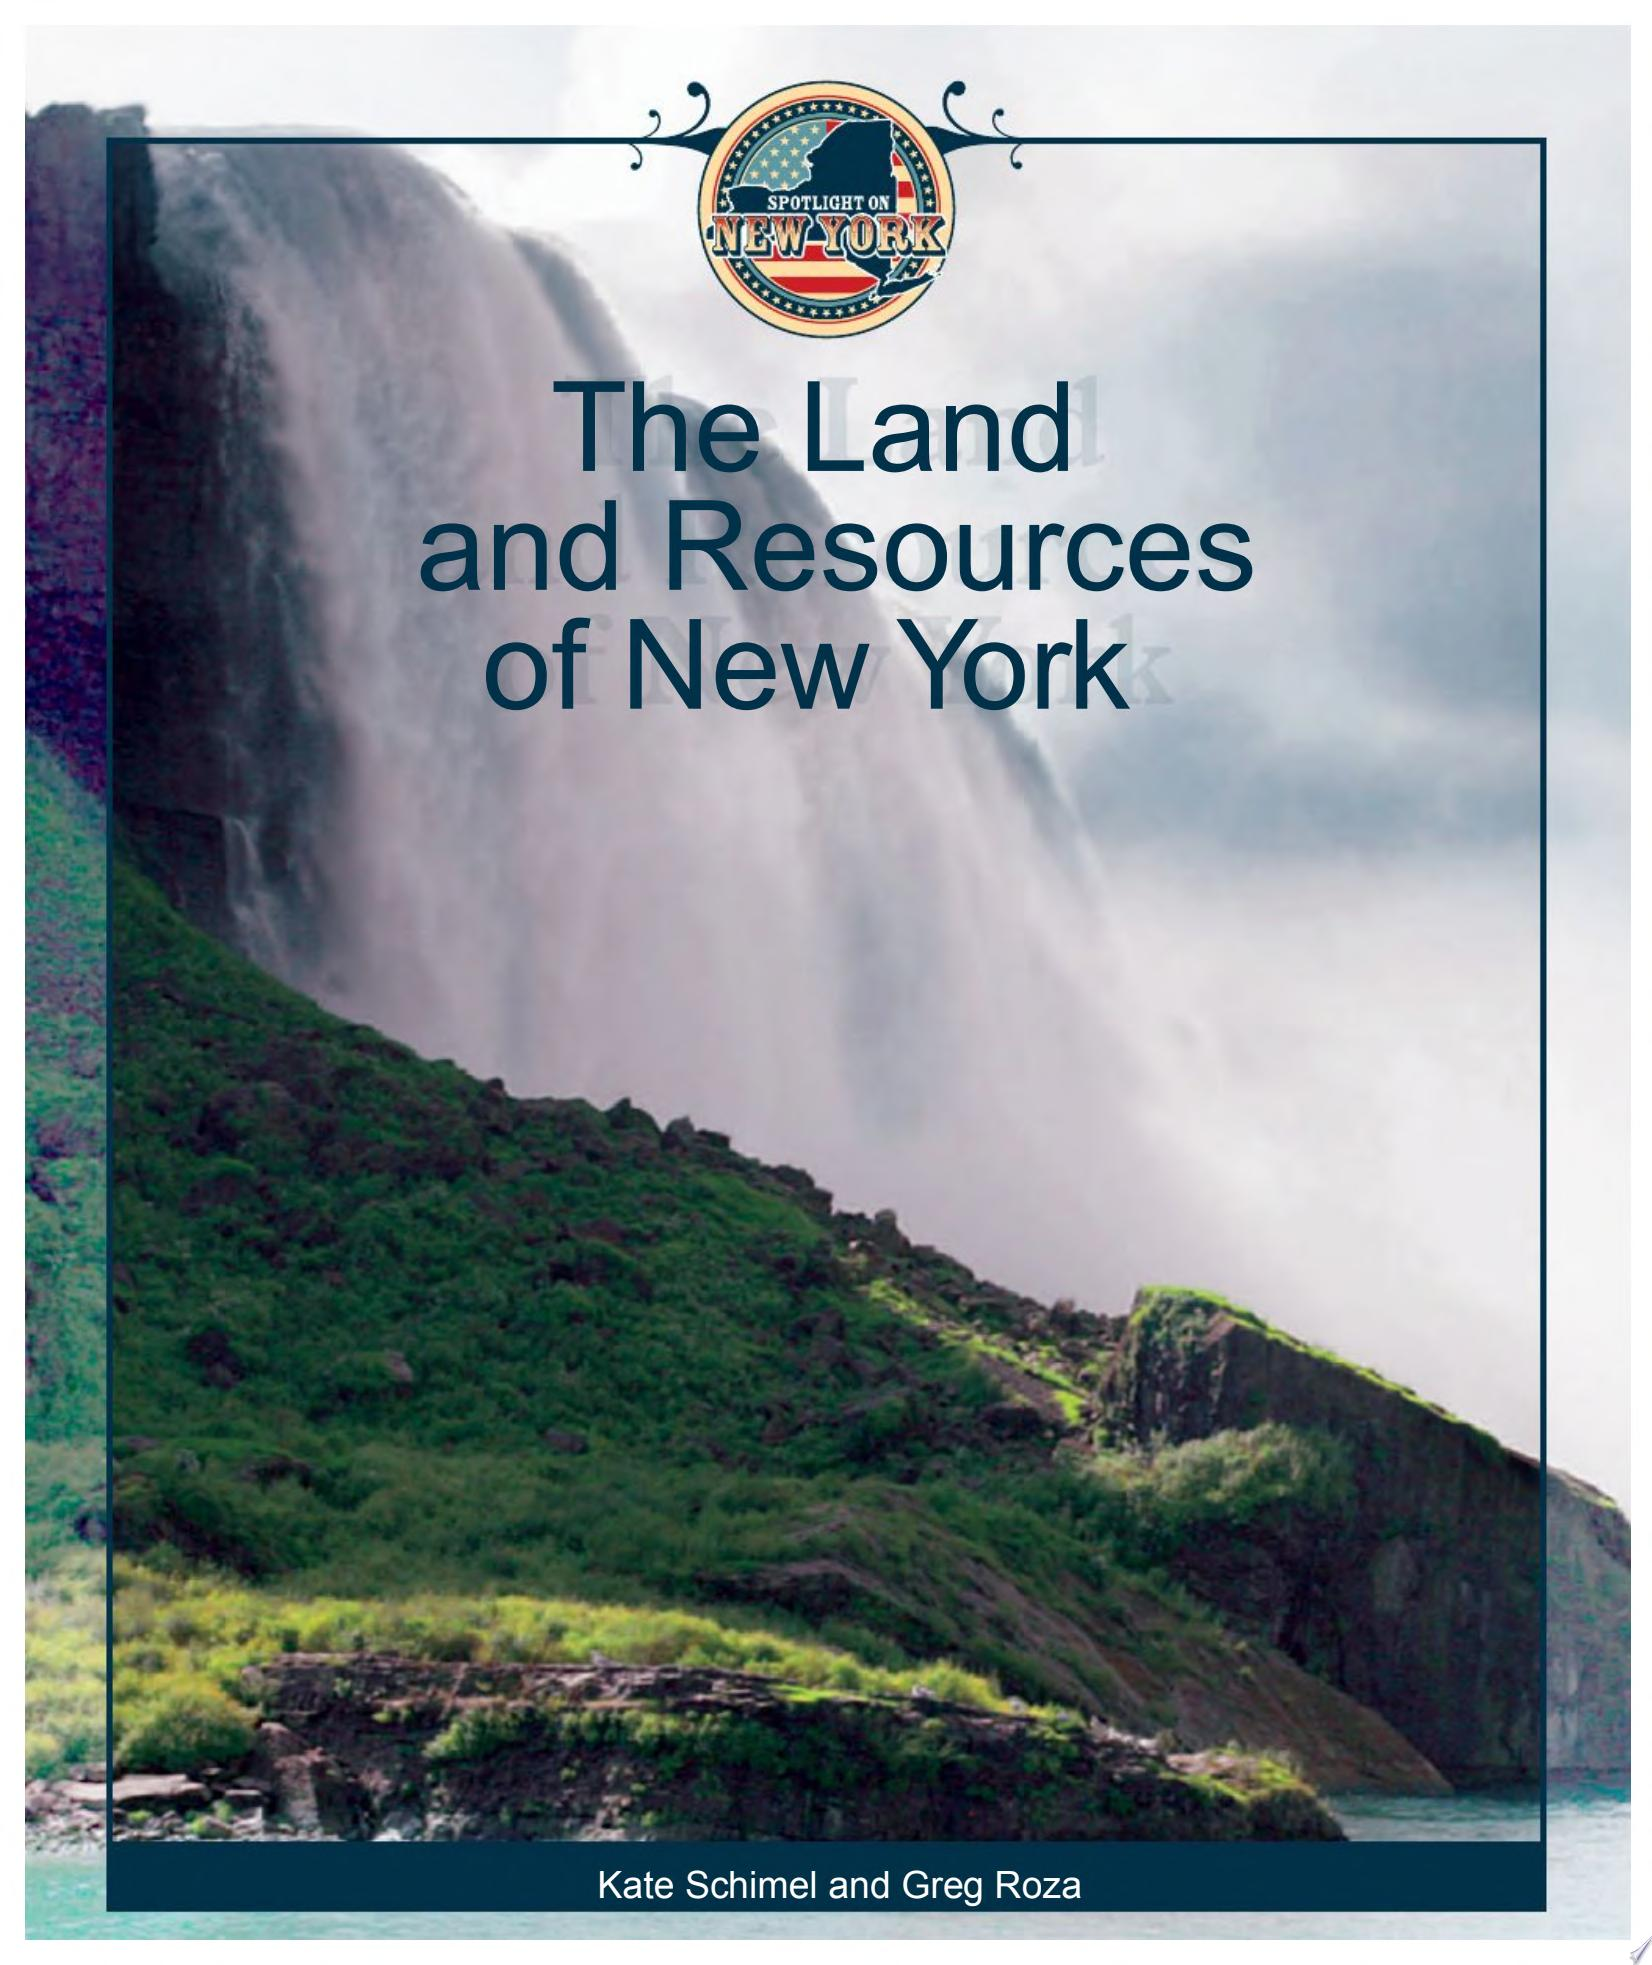 The Land and Resources of New York